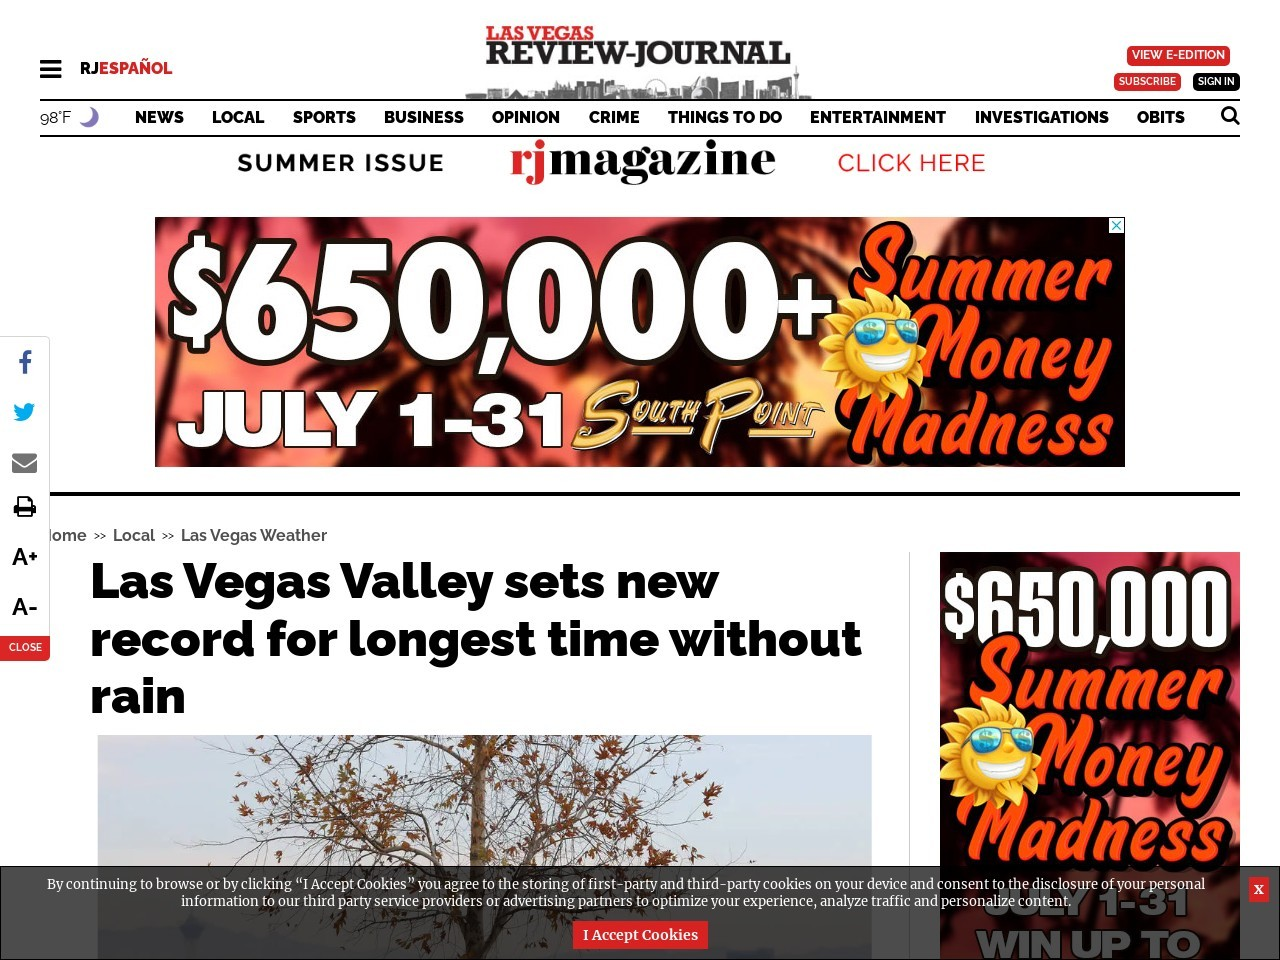 Las Vegas Valley sets new record for longest time without rain